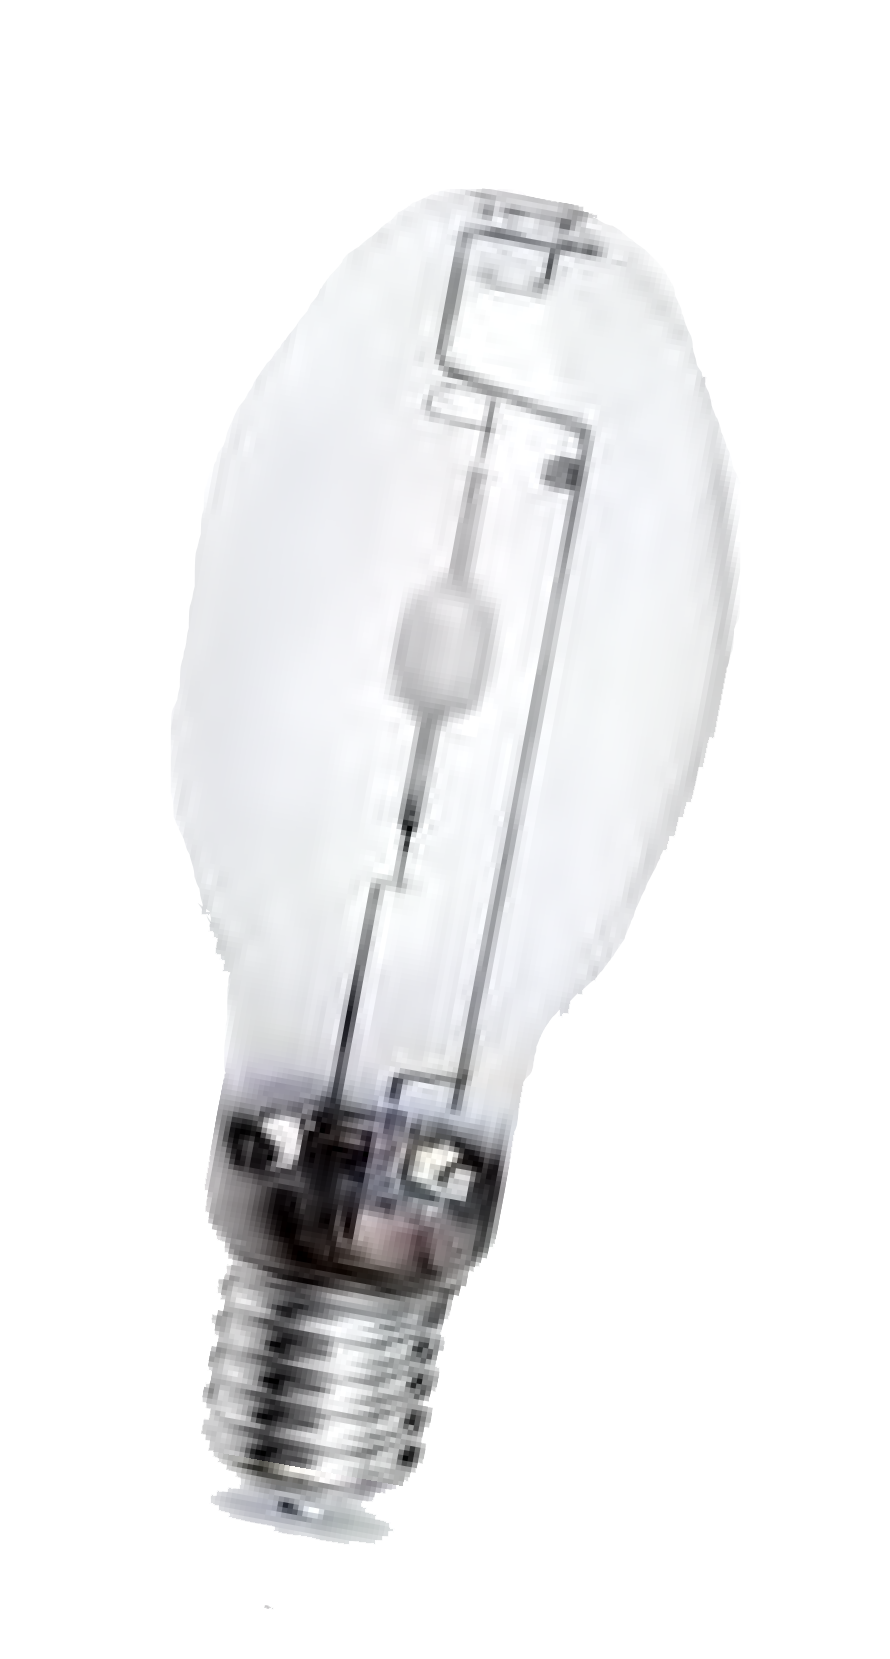 MH Eliptical Lamp Image